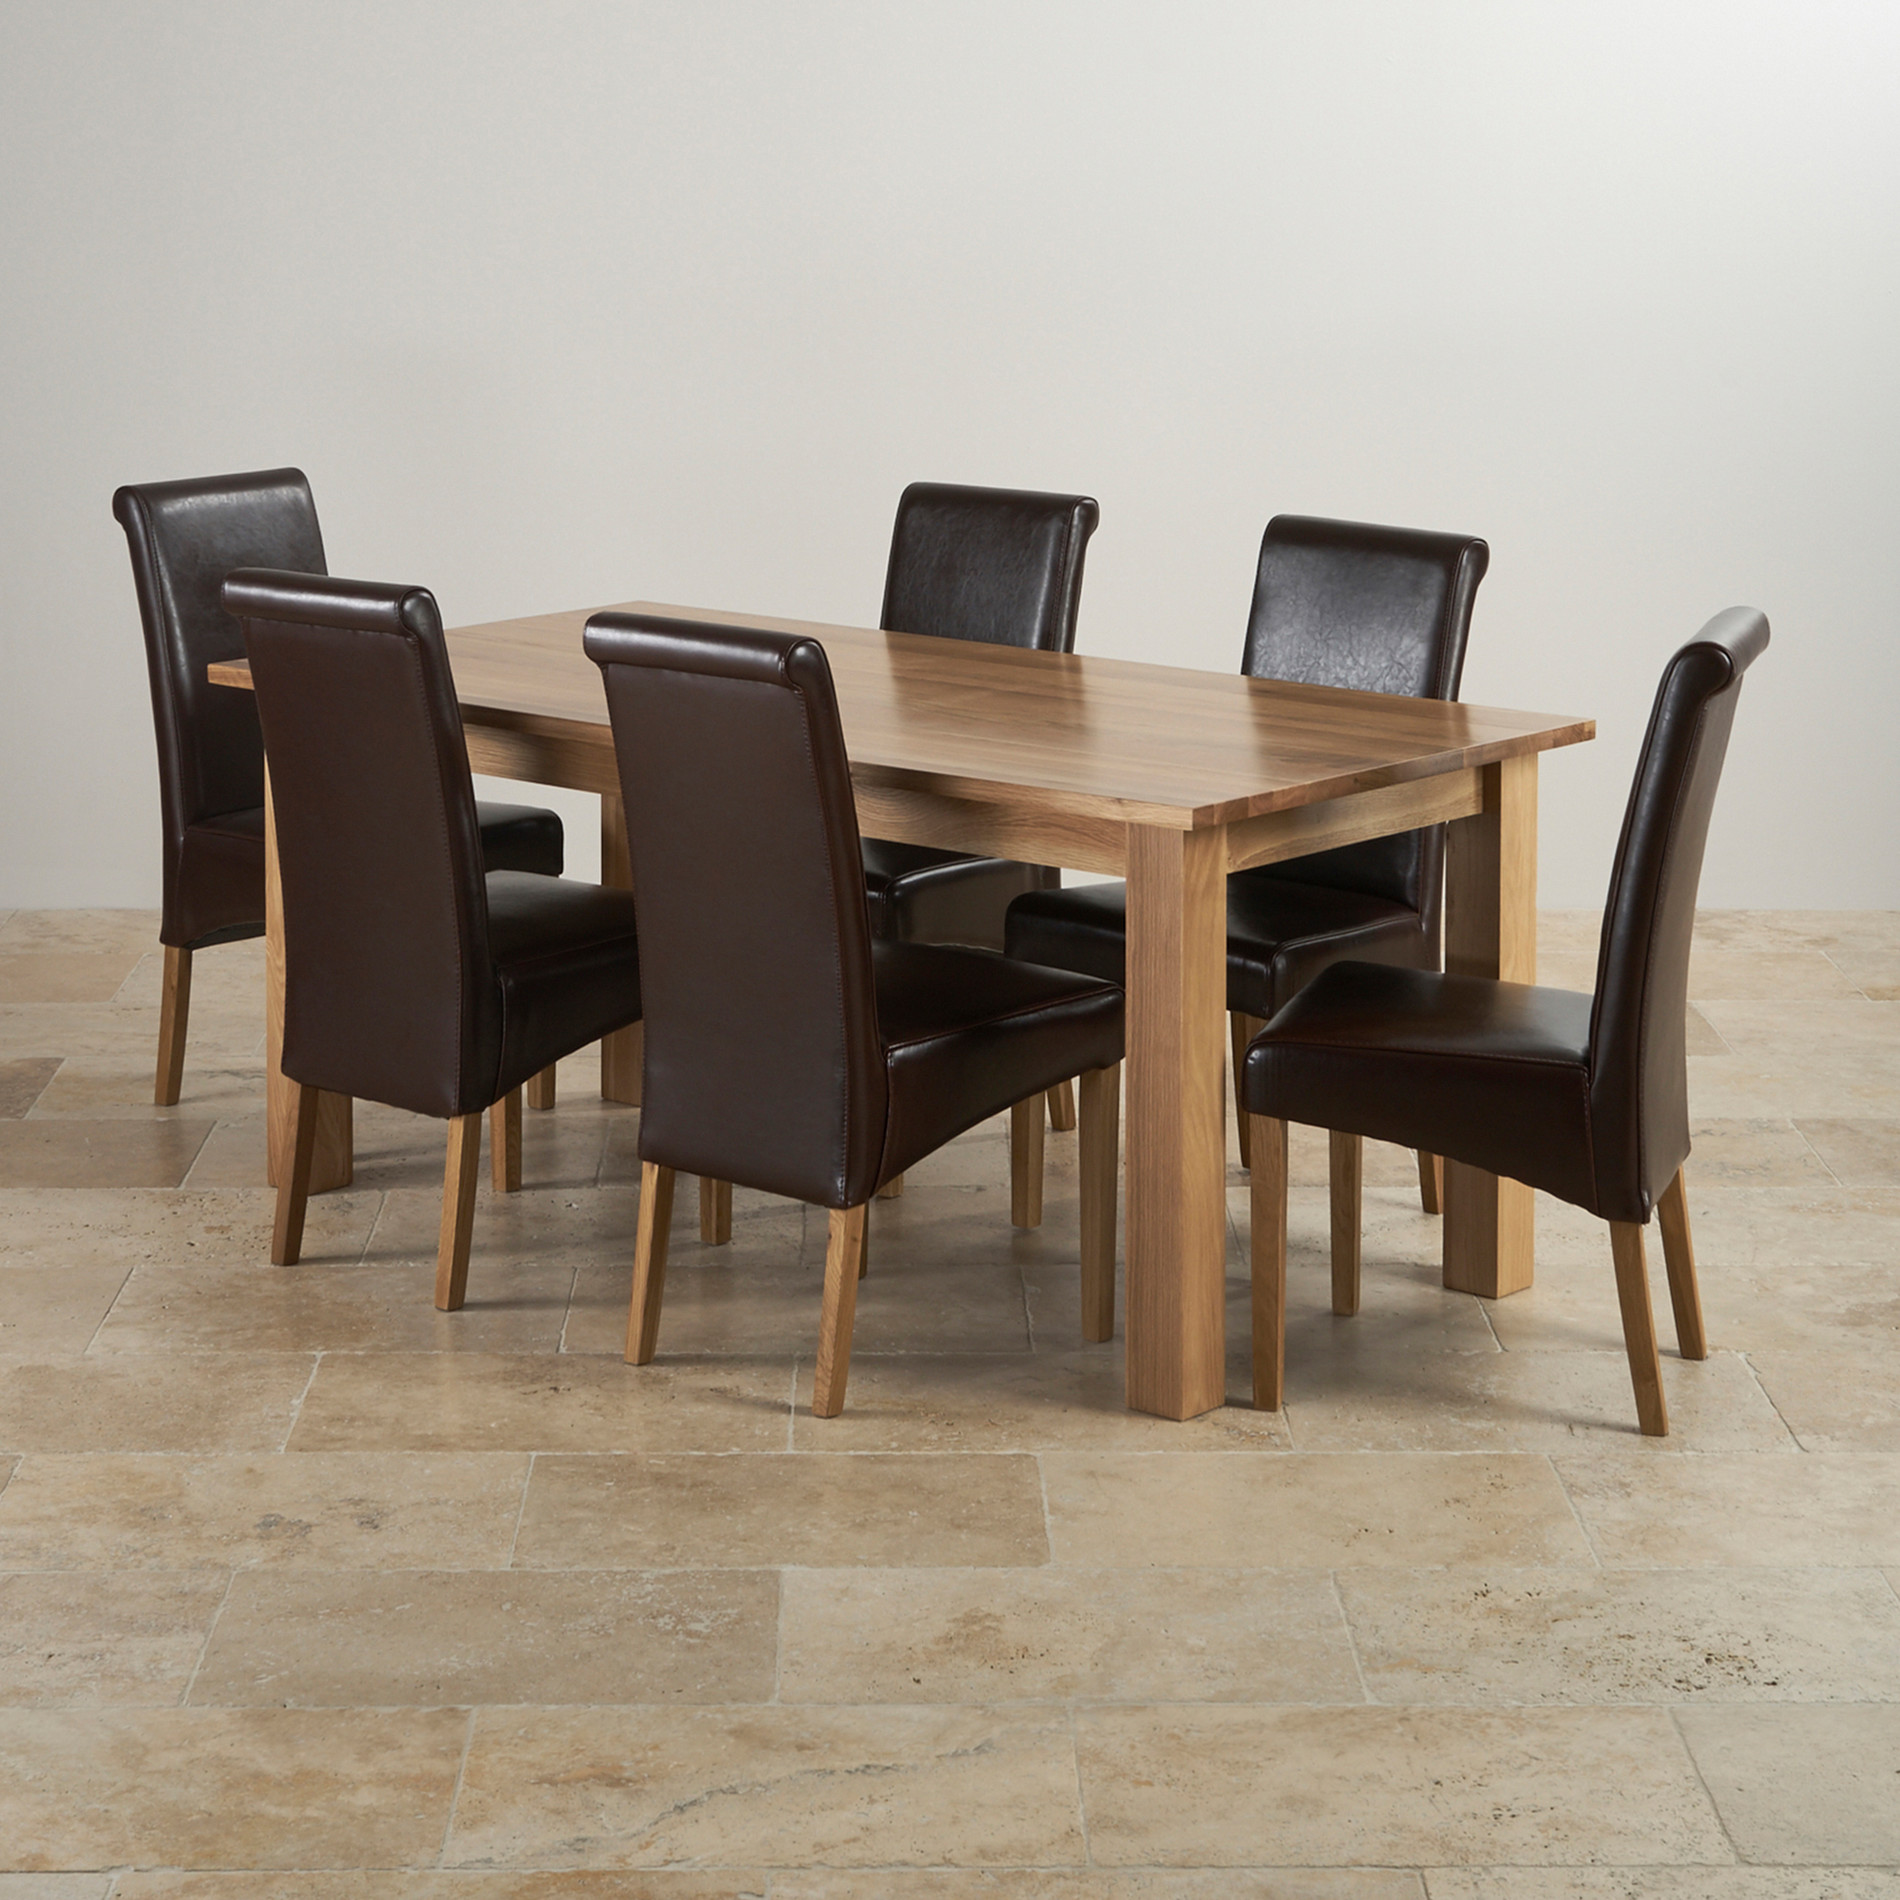 Dining Table And 6 Chairs Contemporary Dining Set In Natural Oak 6ft Table 43 6 Chairs